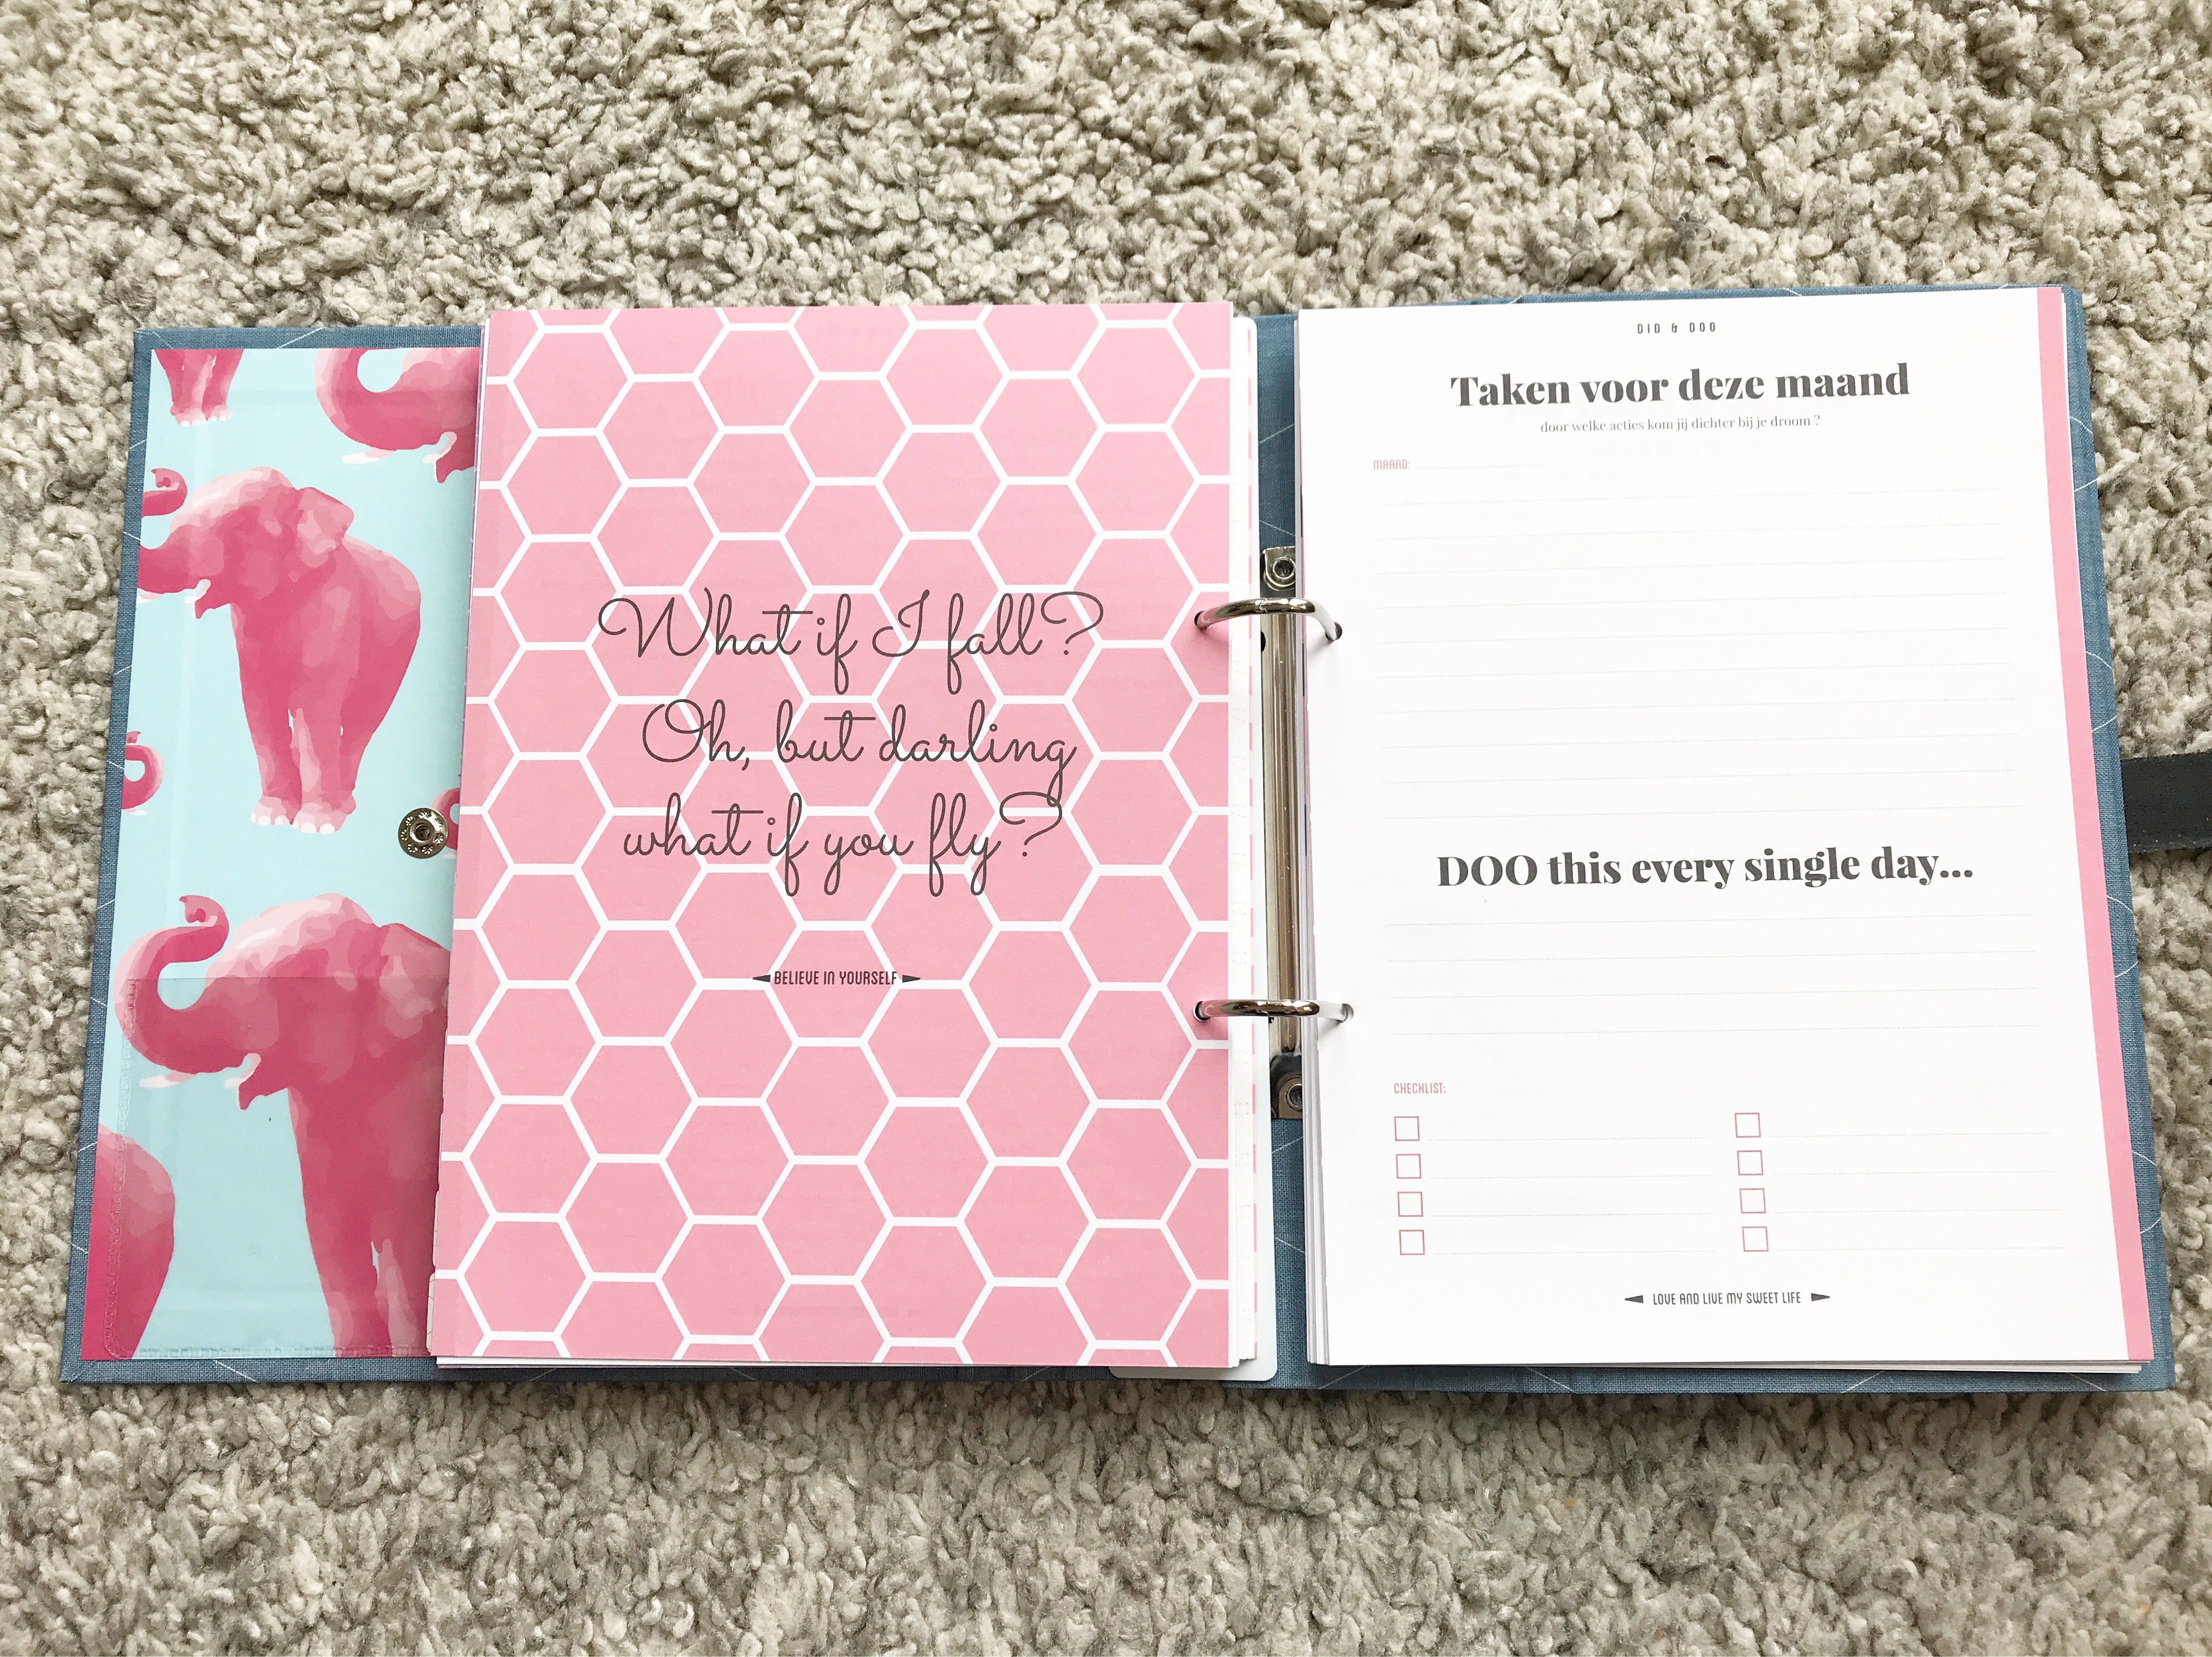 Milly Pie plannen planner planning orde chaos druk mama moeder mam mamablog mamablogger blog blogger lifestyle doelen laviedemama.nl